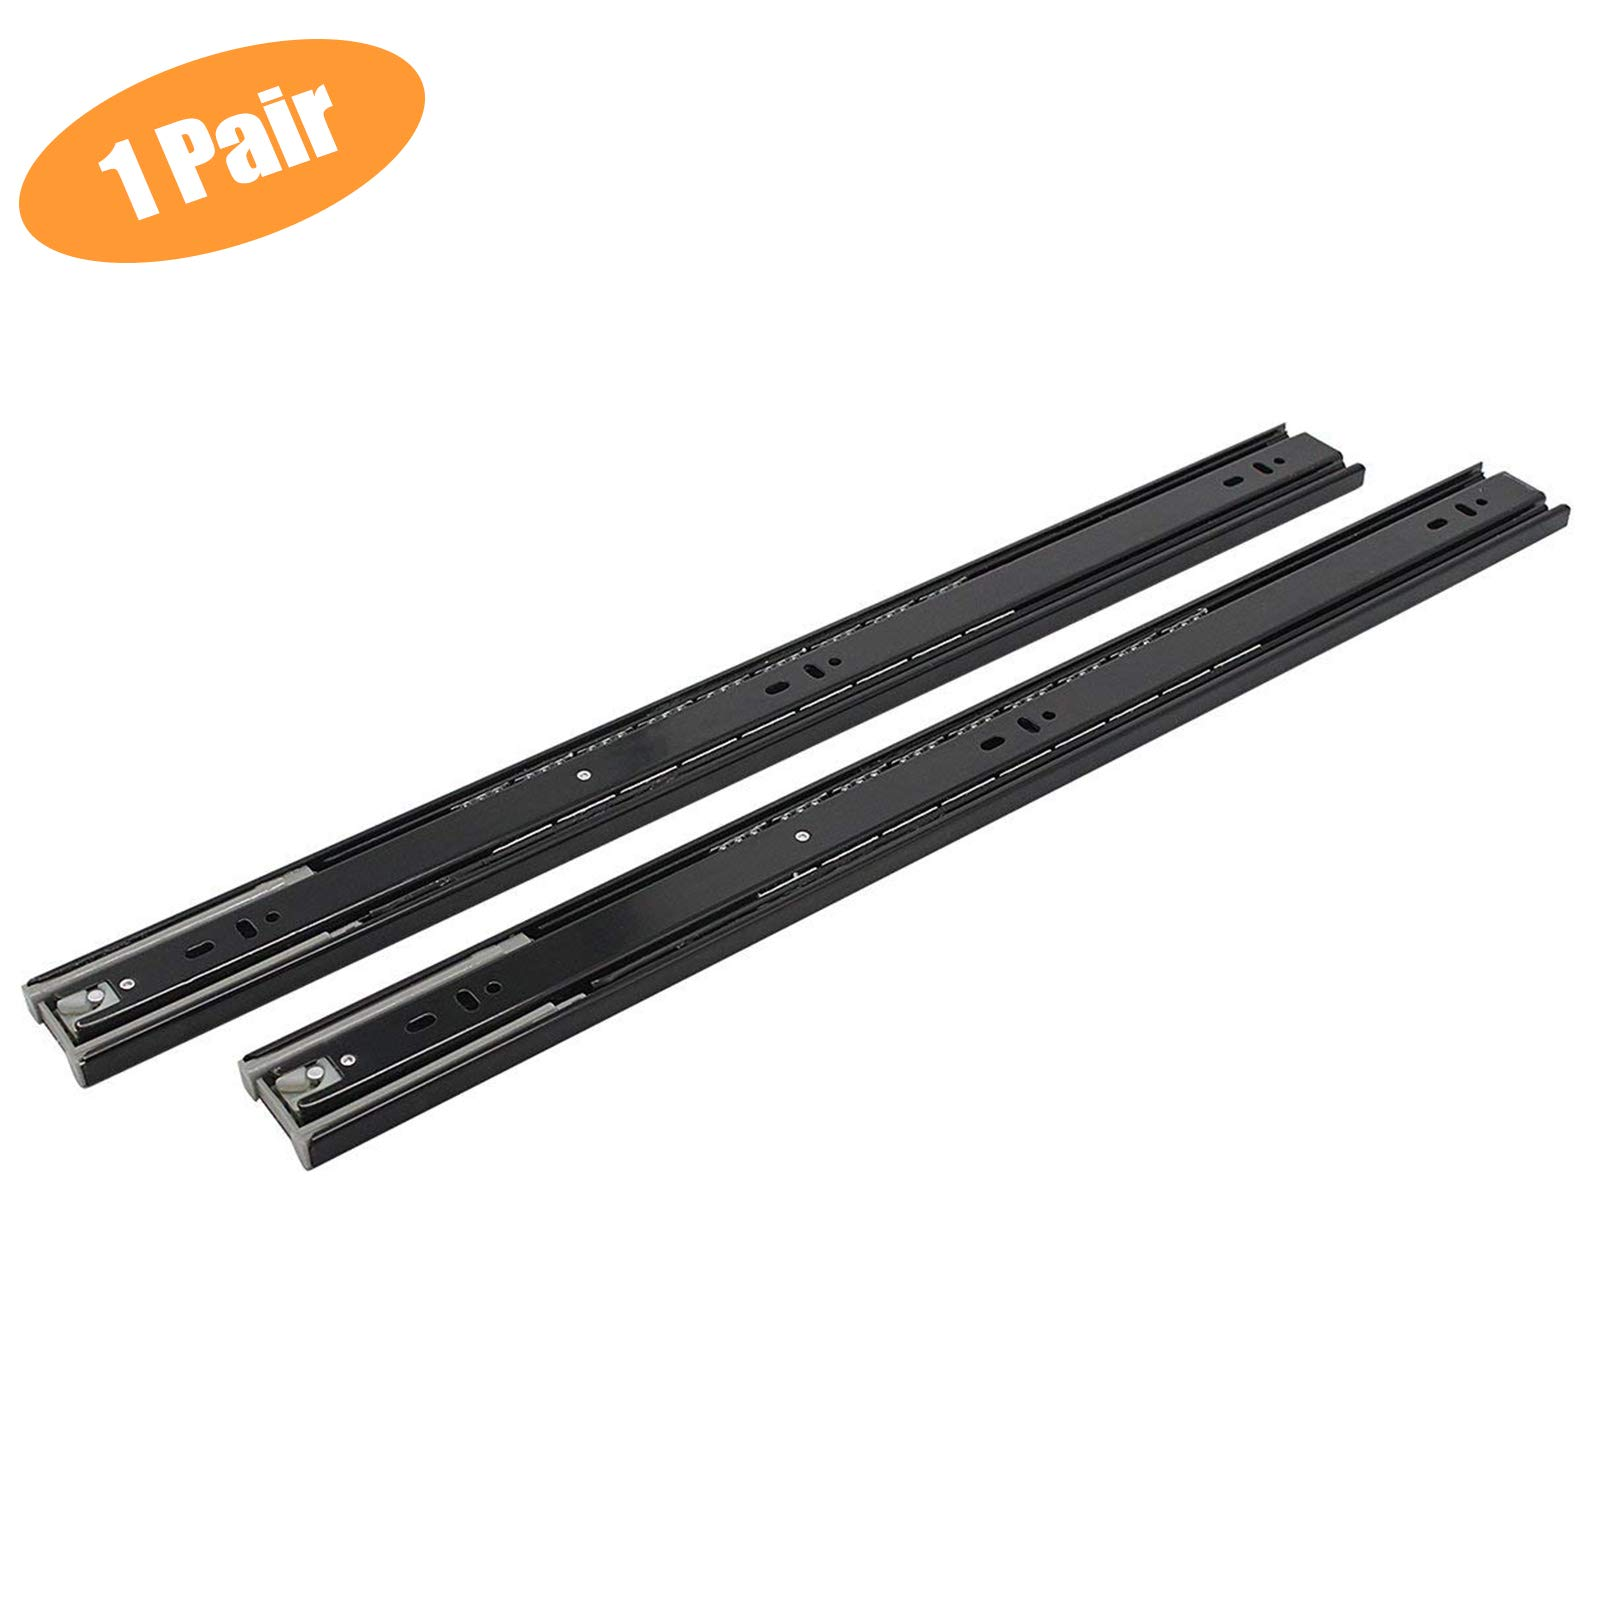 1 Pair of 24 Inch Probrico Soft-Close Ball Bearing Full Extension Drawer Slide 100lb Load Rating Available in 12'',14'',16'',18'',20'',22'', 24'' Lengths